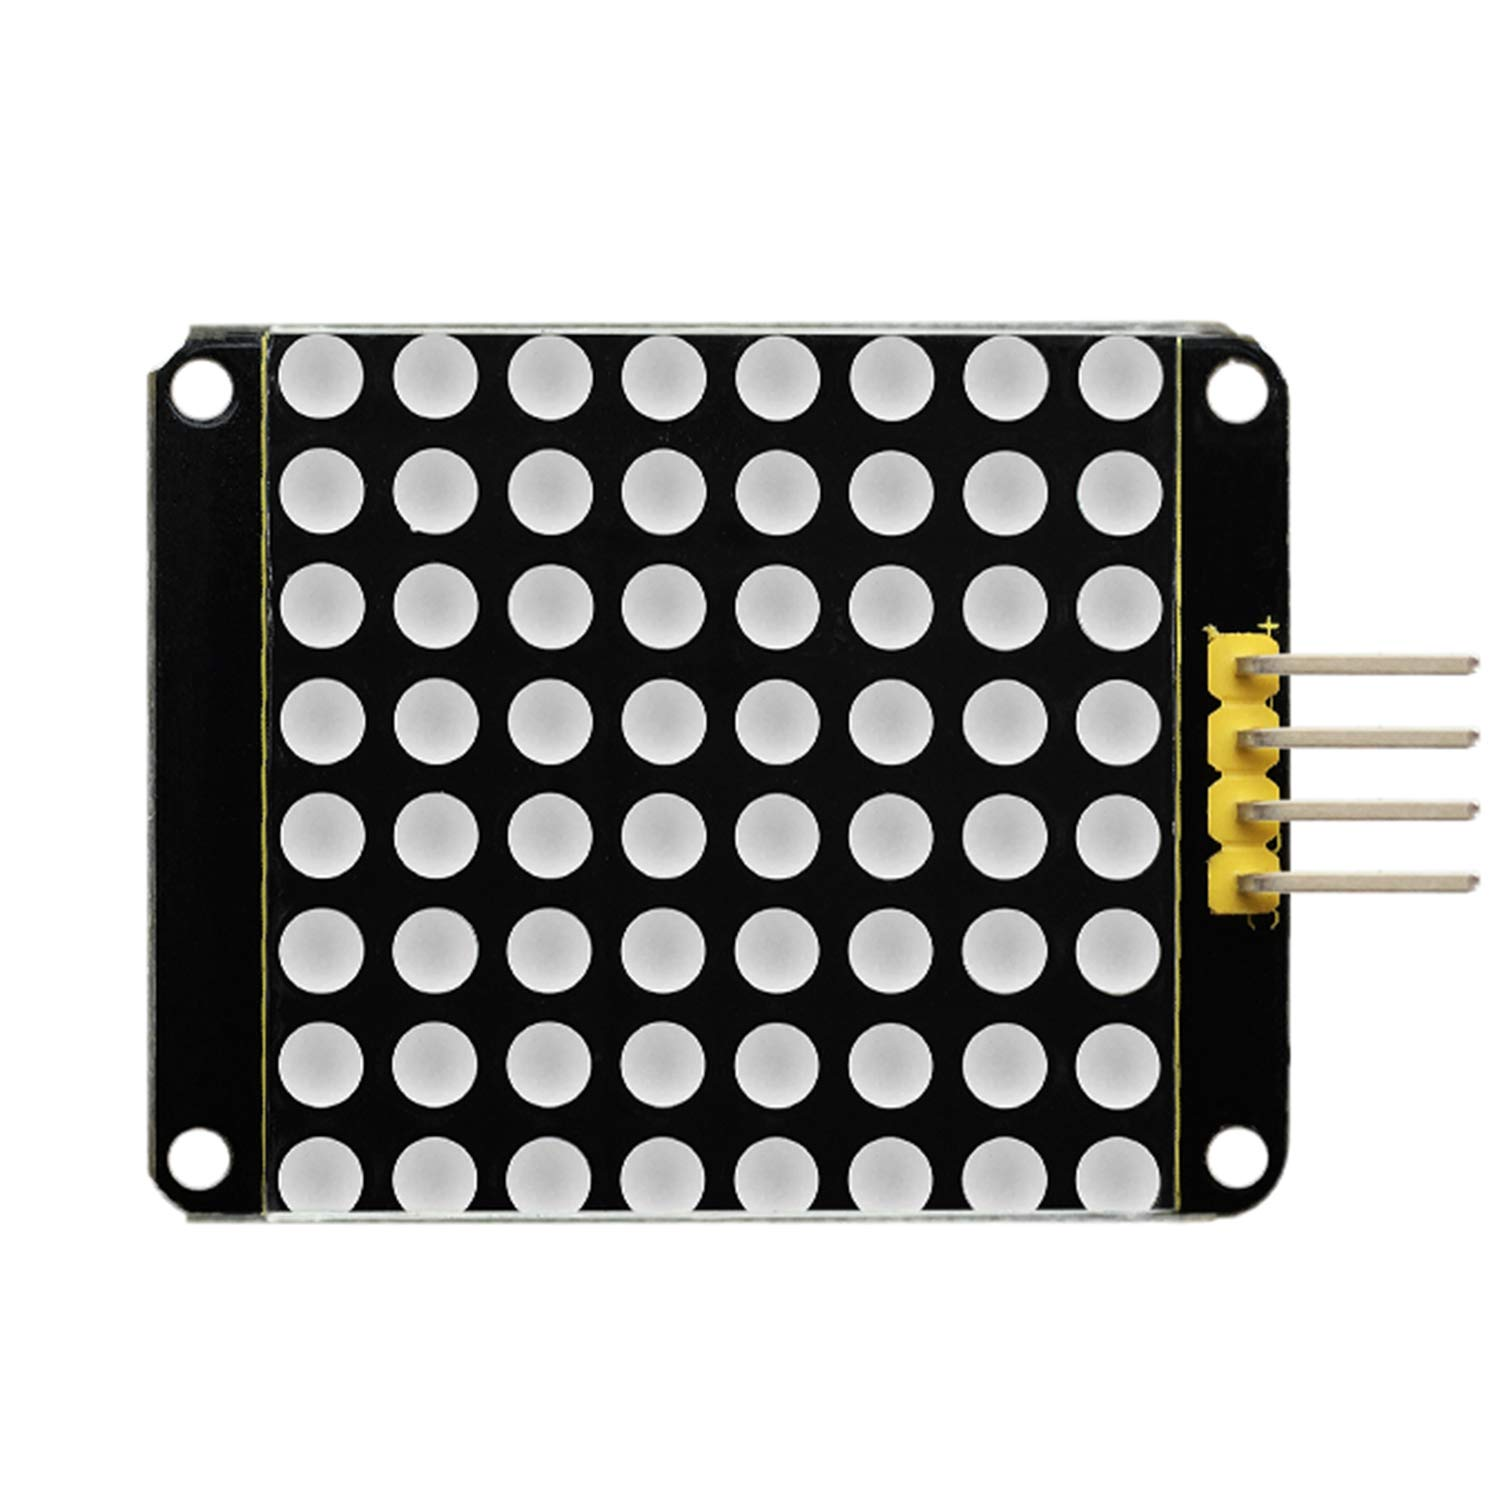 keyestudio HT16K33 Dot Matrix Module Red Color 8x8 LED Matrix Display Module for Arduino and Raspberry Pi (3PCS) keys